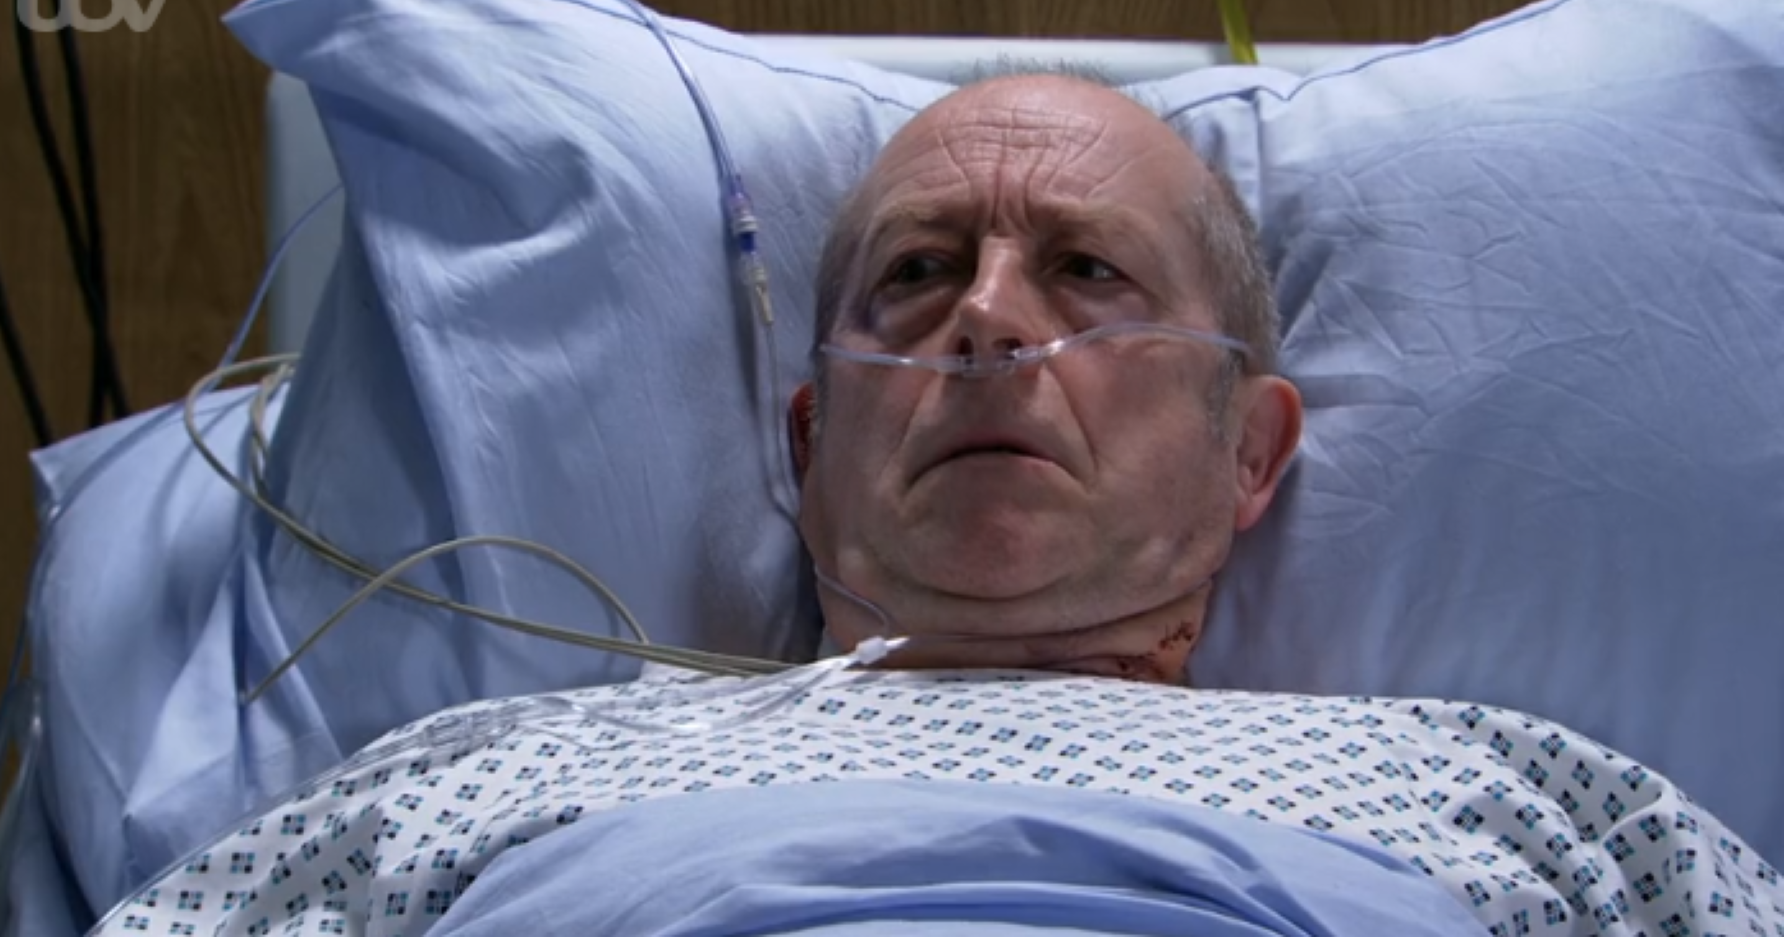 Coronation Street fans disgusted as Geoff wakes up and accuses wife Yasmeen of trying to kill him